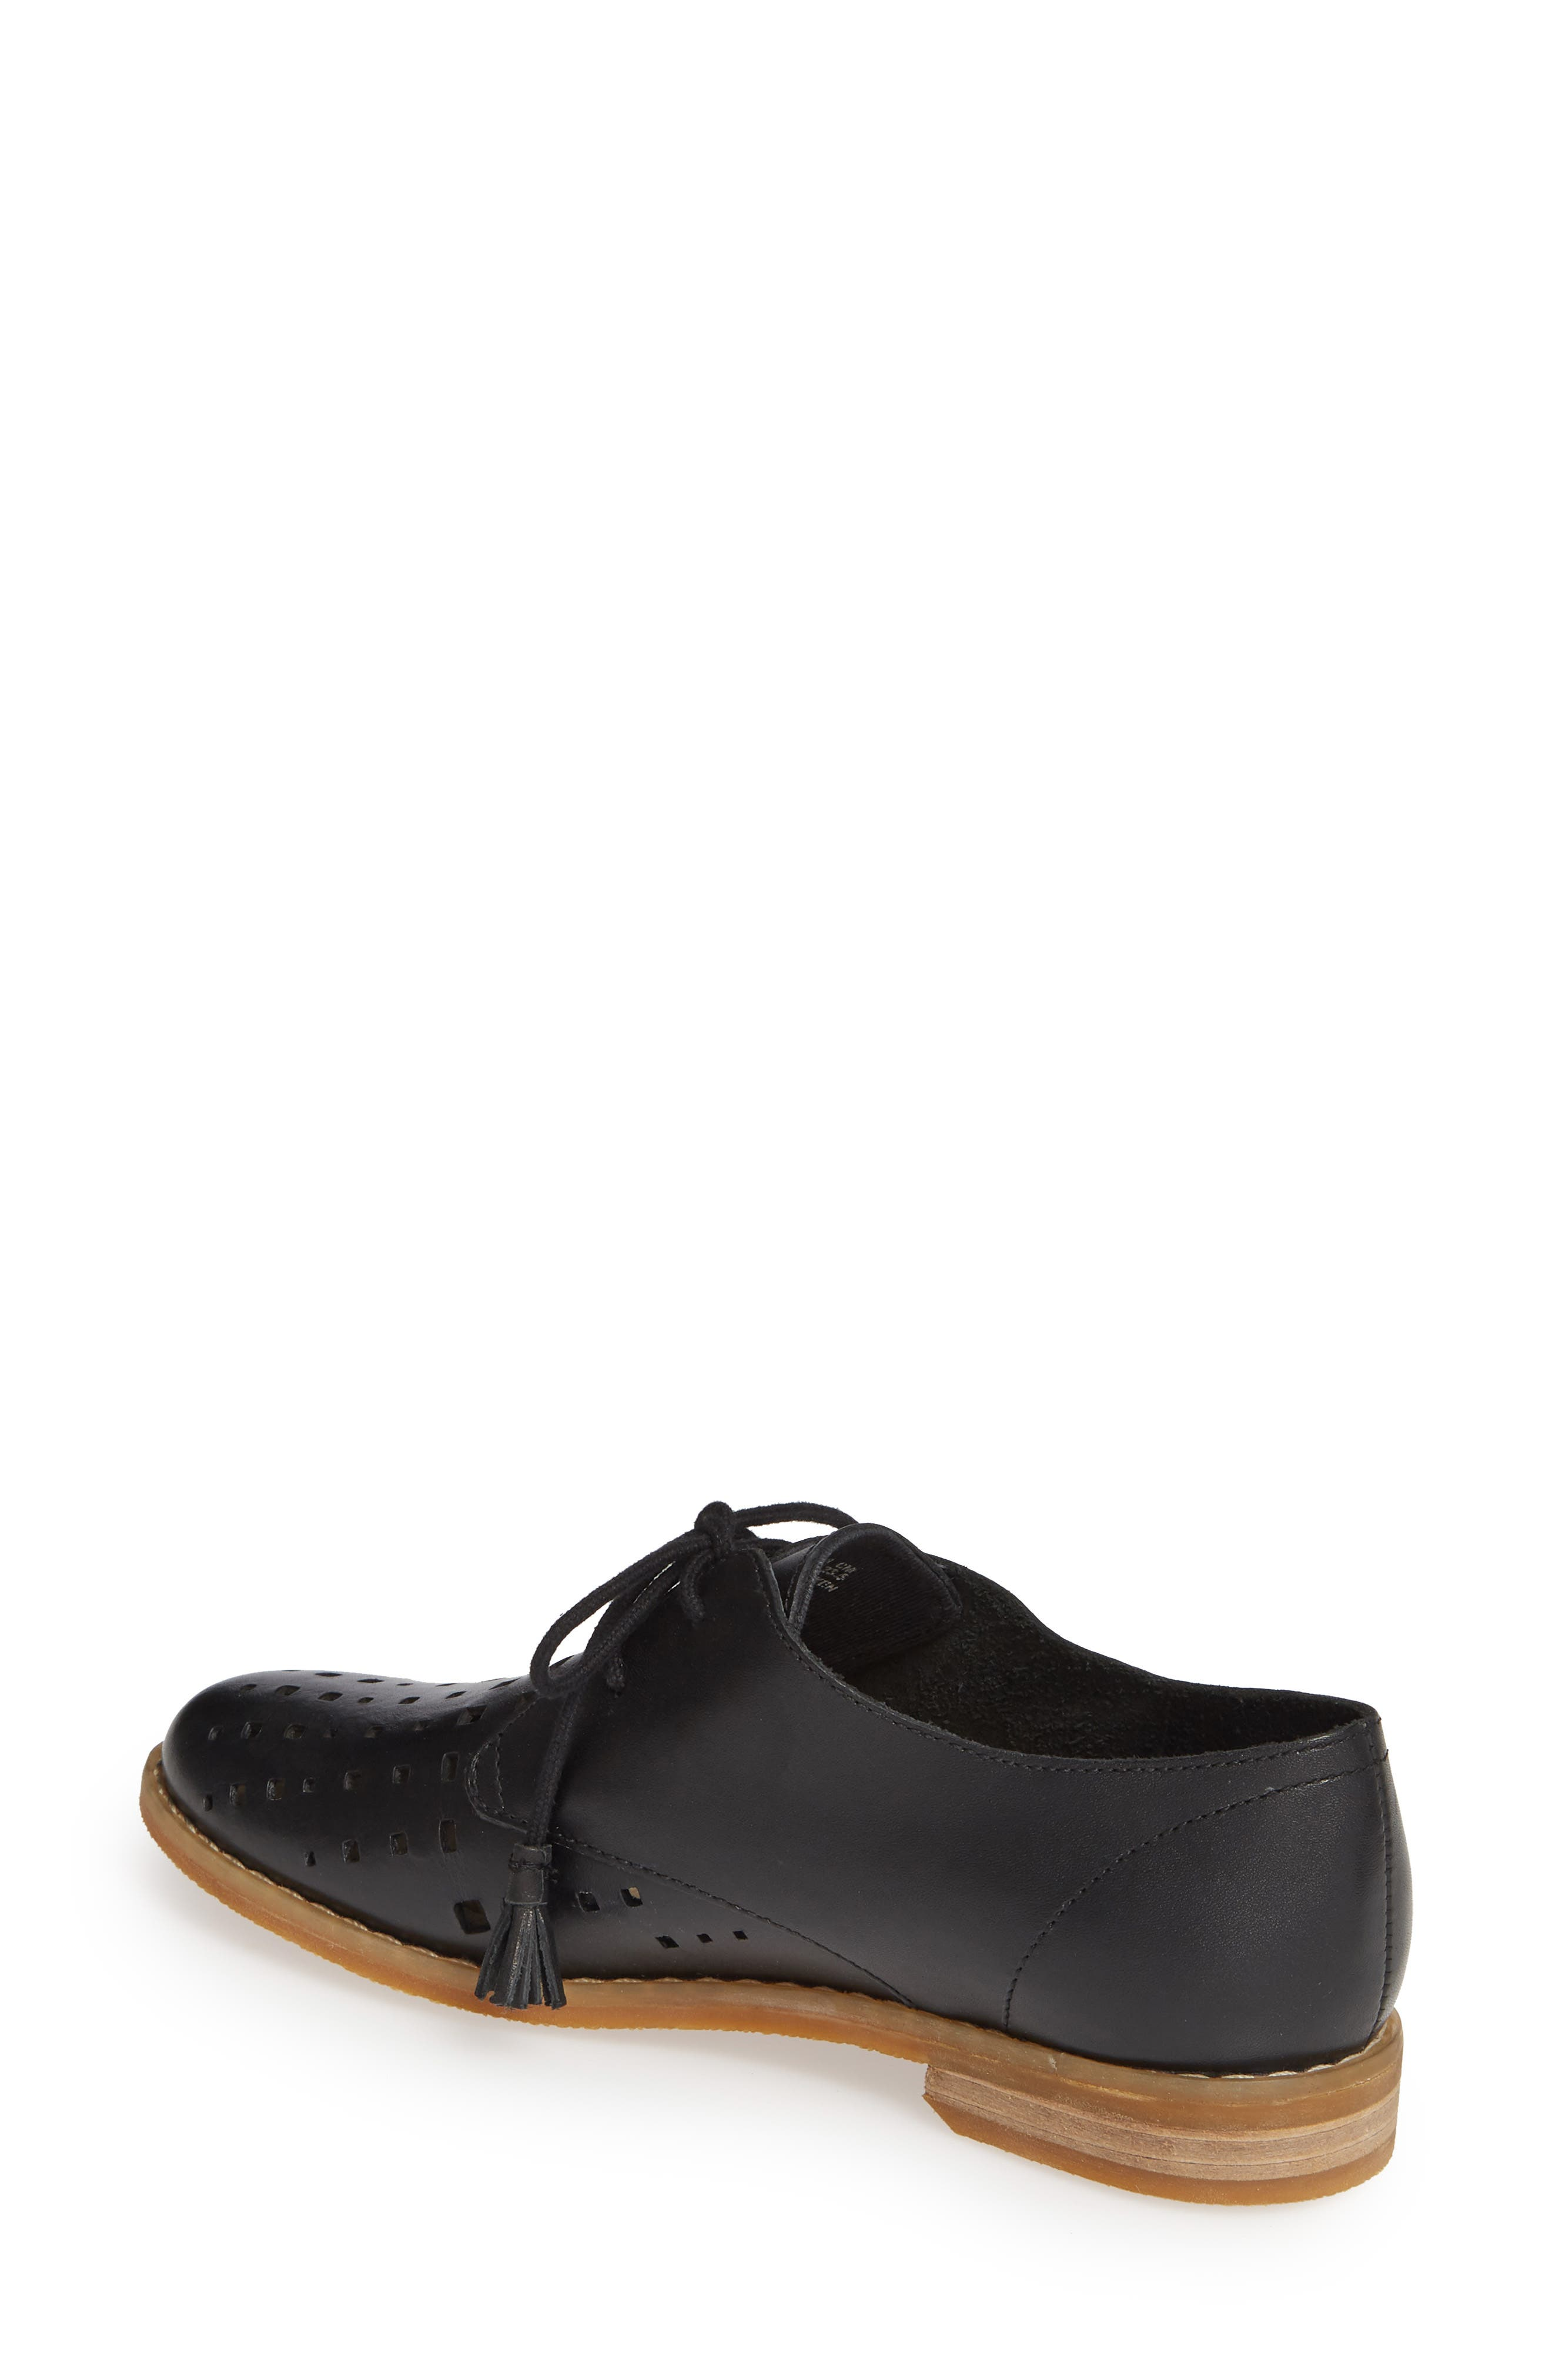 HUSH PUPPIES<SUP>®</SUP>, Chardon Perforated Derby, Alternate thumbnail 2, color, BLACK LEATHER